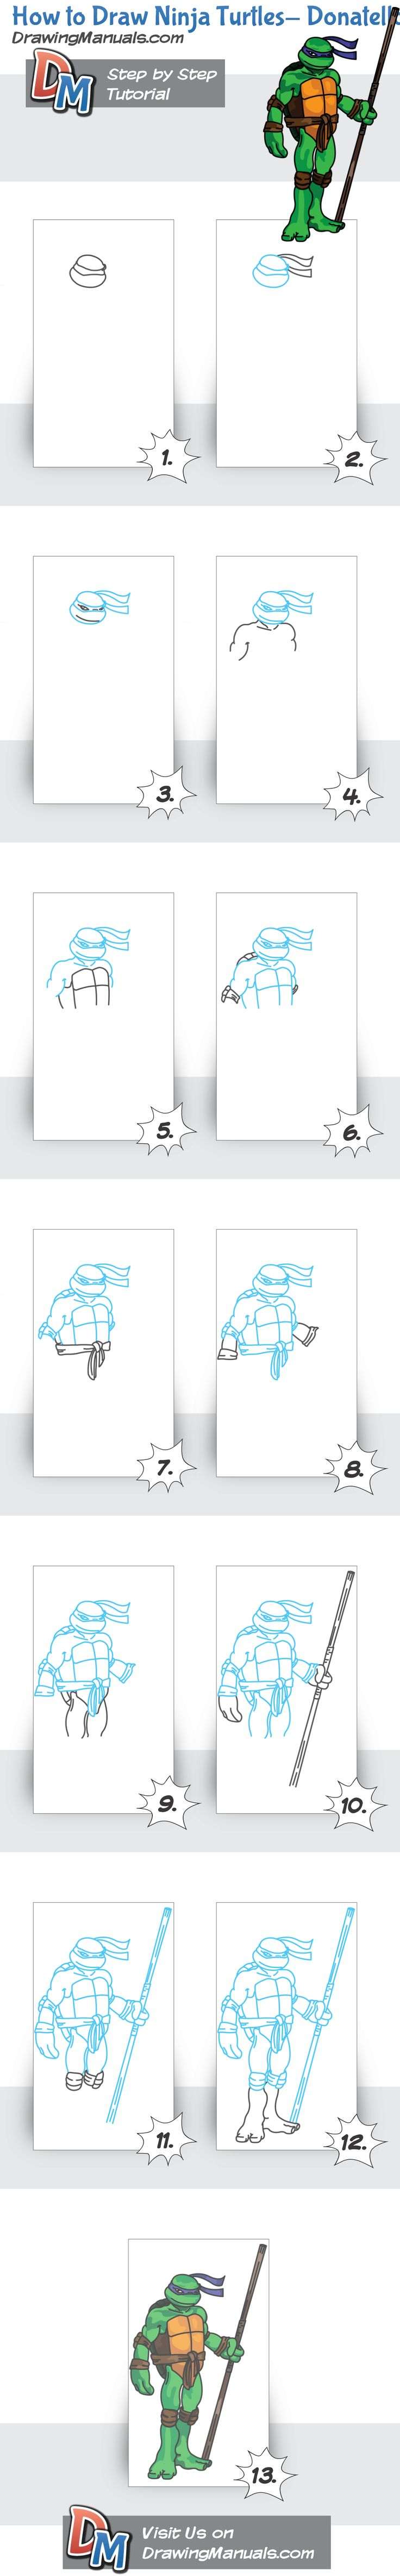 Second tutorial for Ninja Turtle-Donatello http://drawingmanuals.com/manual/how-to-draw-ninja-turtles-donatello/